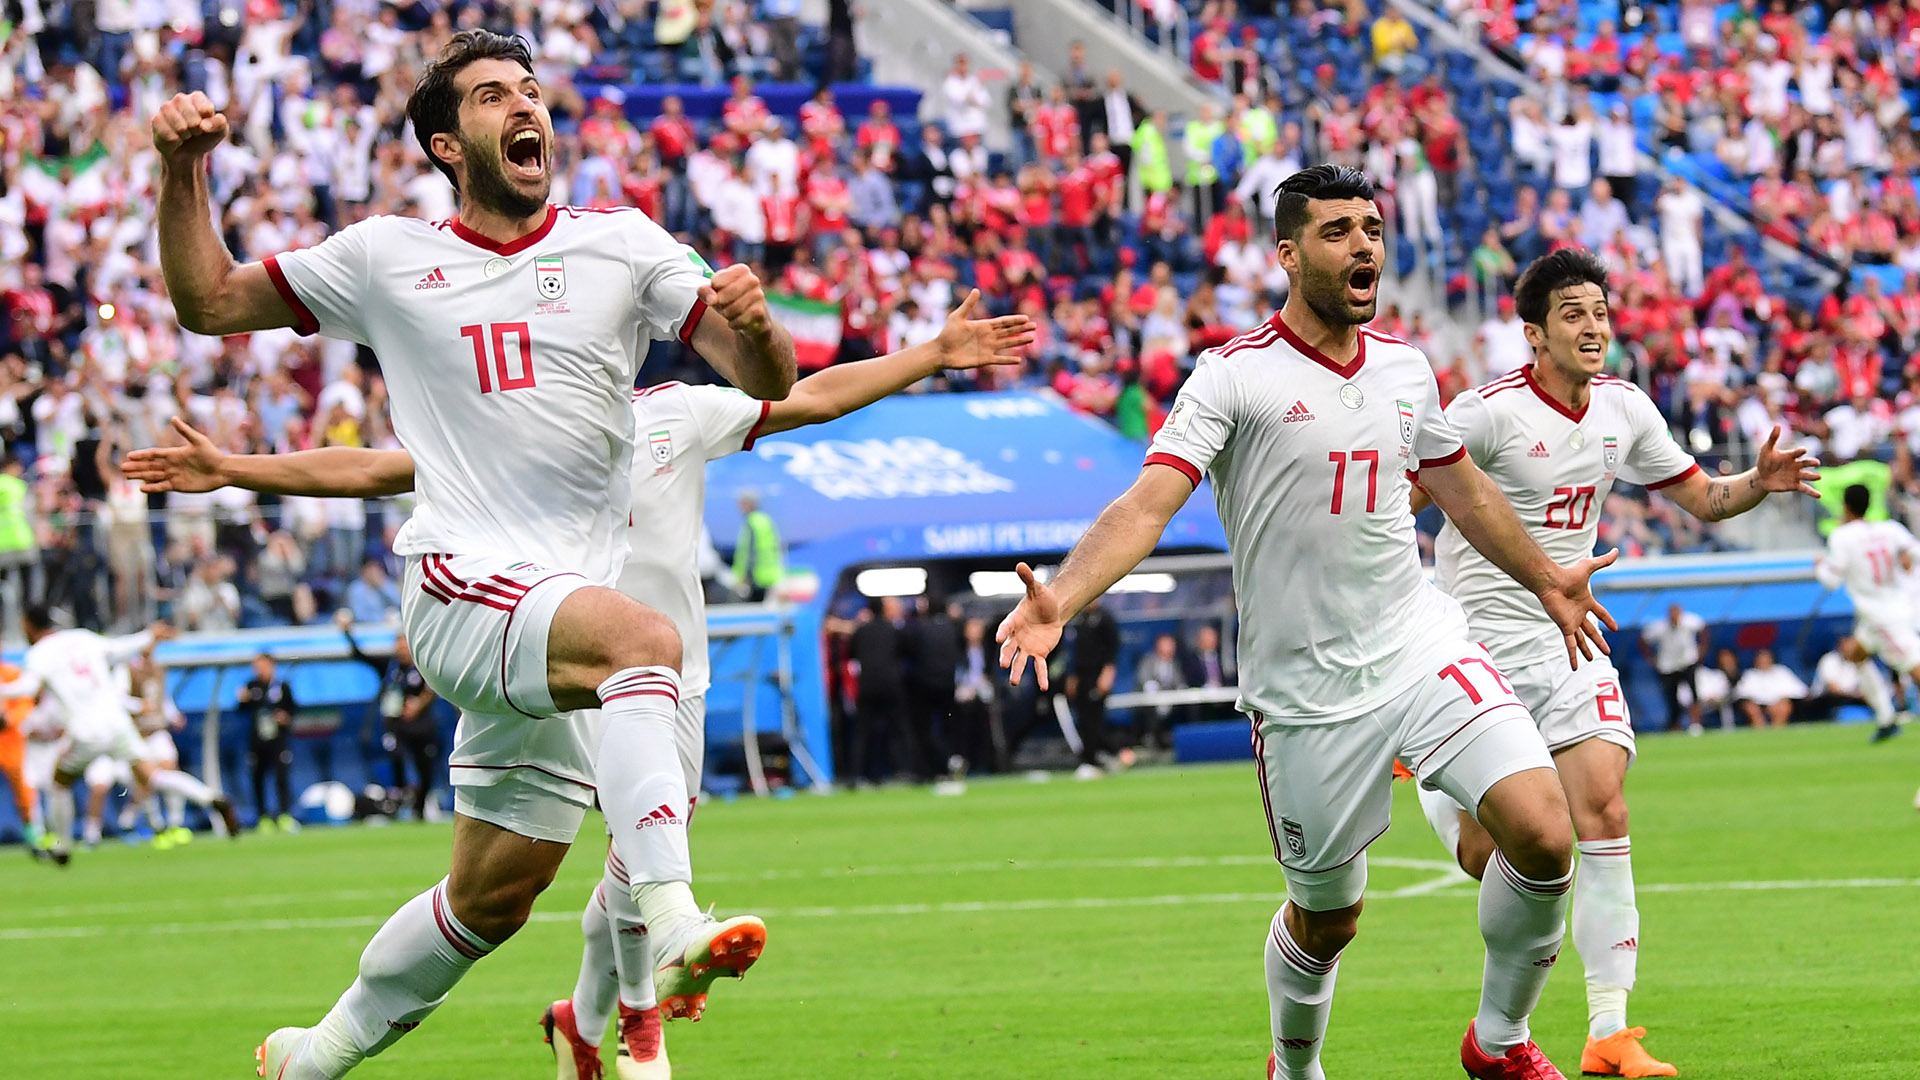 Spain face date with destiny against Iran today